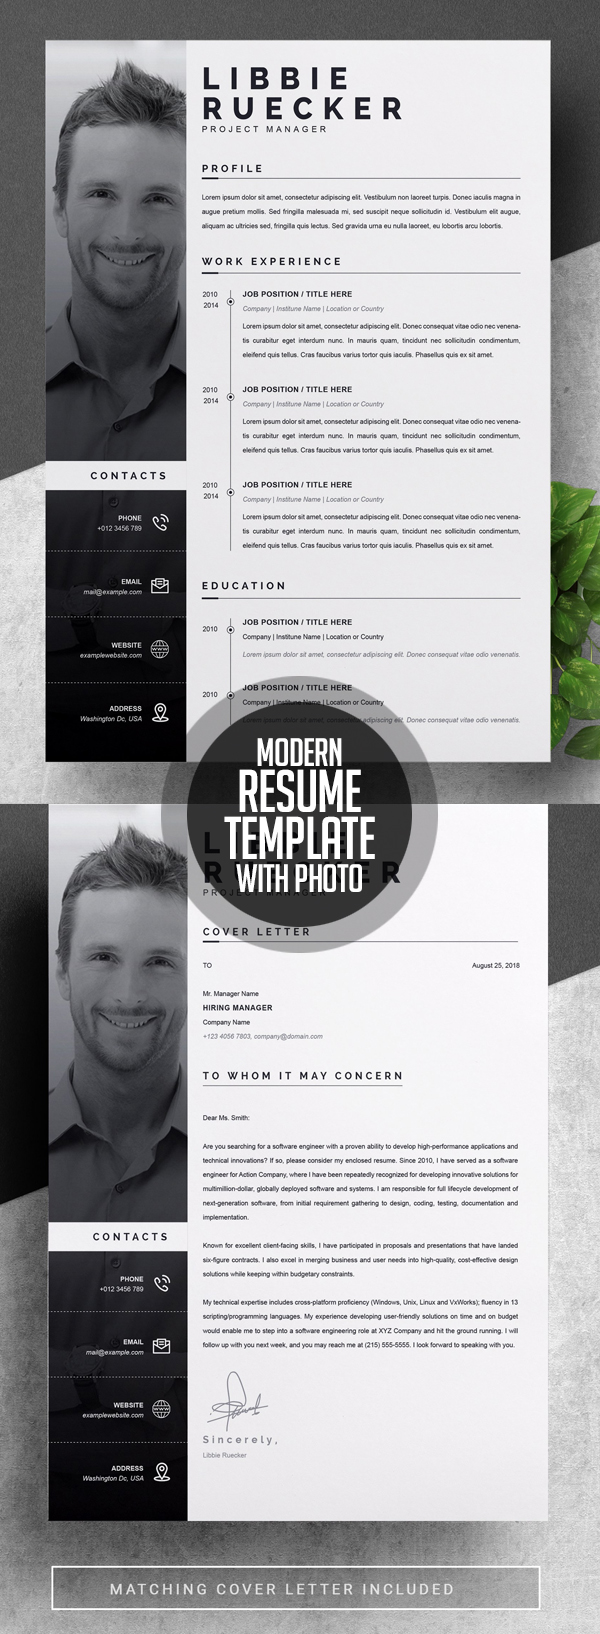 Modern Resume Template with Photo #resumedesign